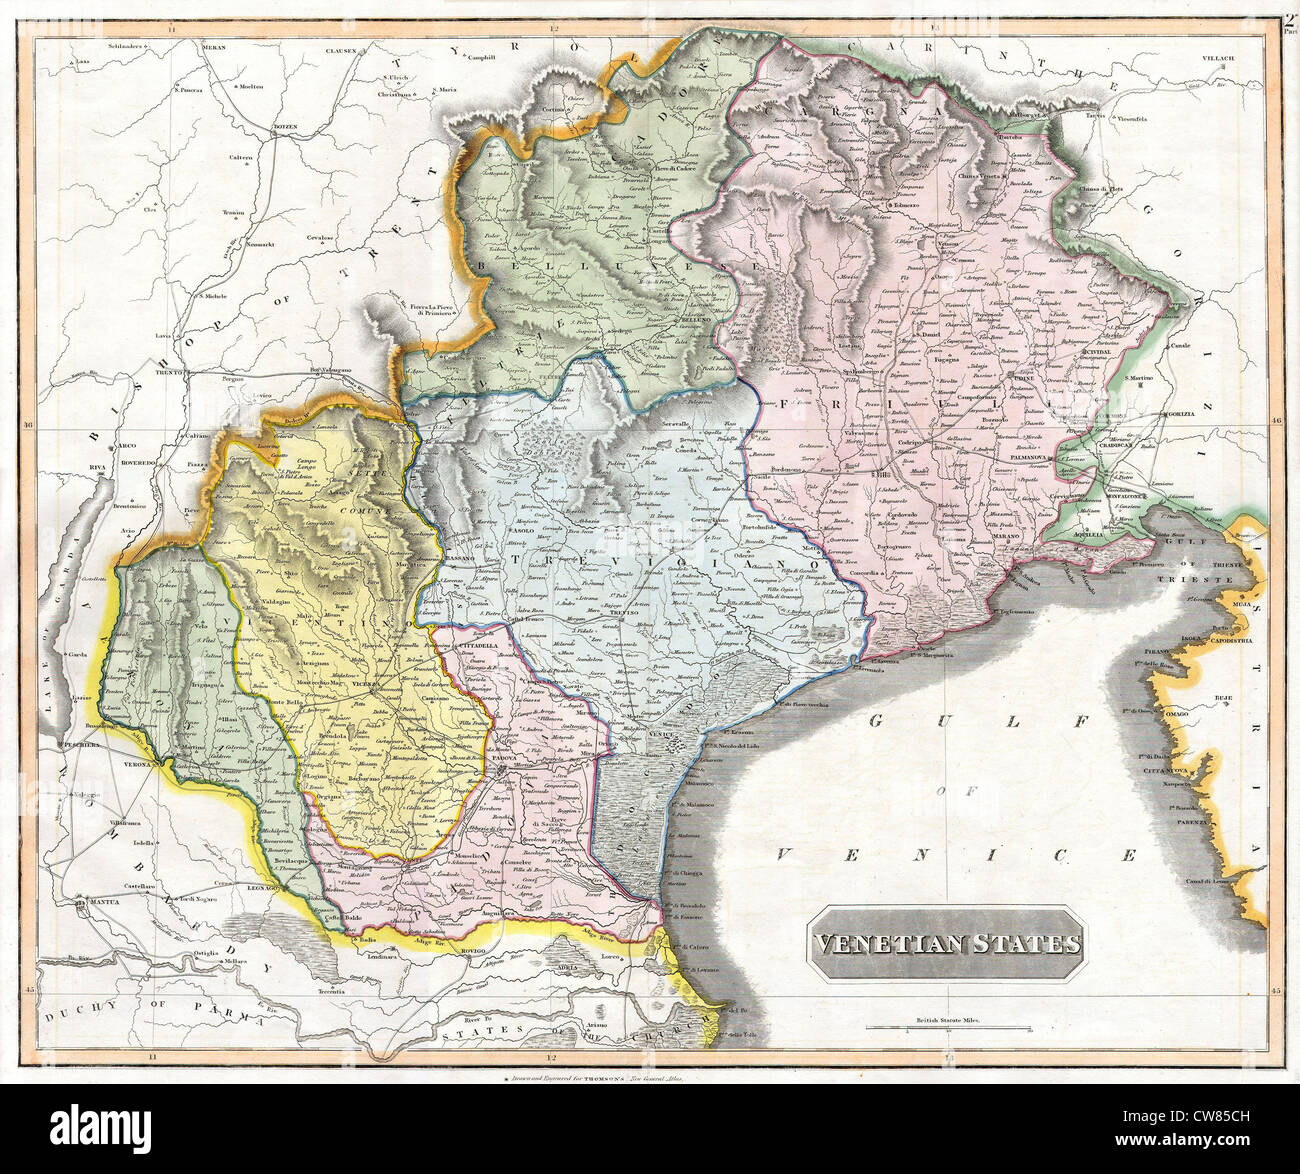 1814 thomson map of the venetian states venice italy stock photo 1814 thomson map of the venetian states venice italy gumiabroncs Gallery